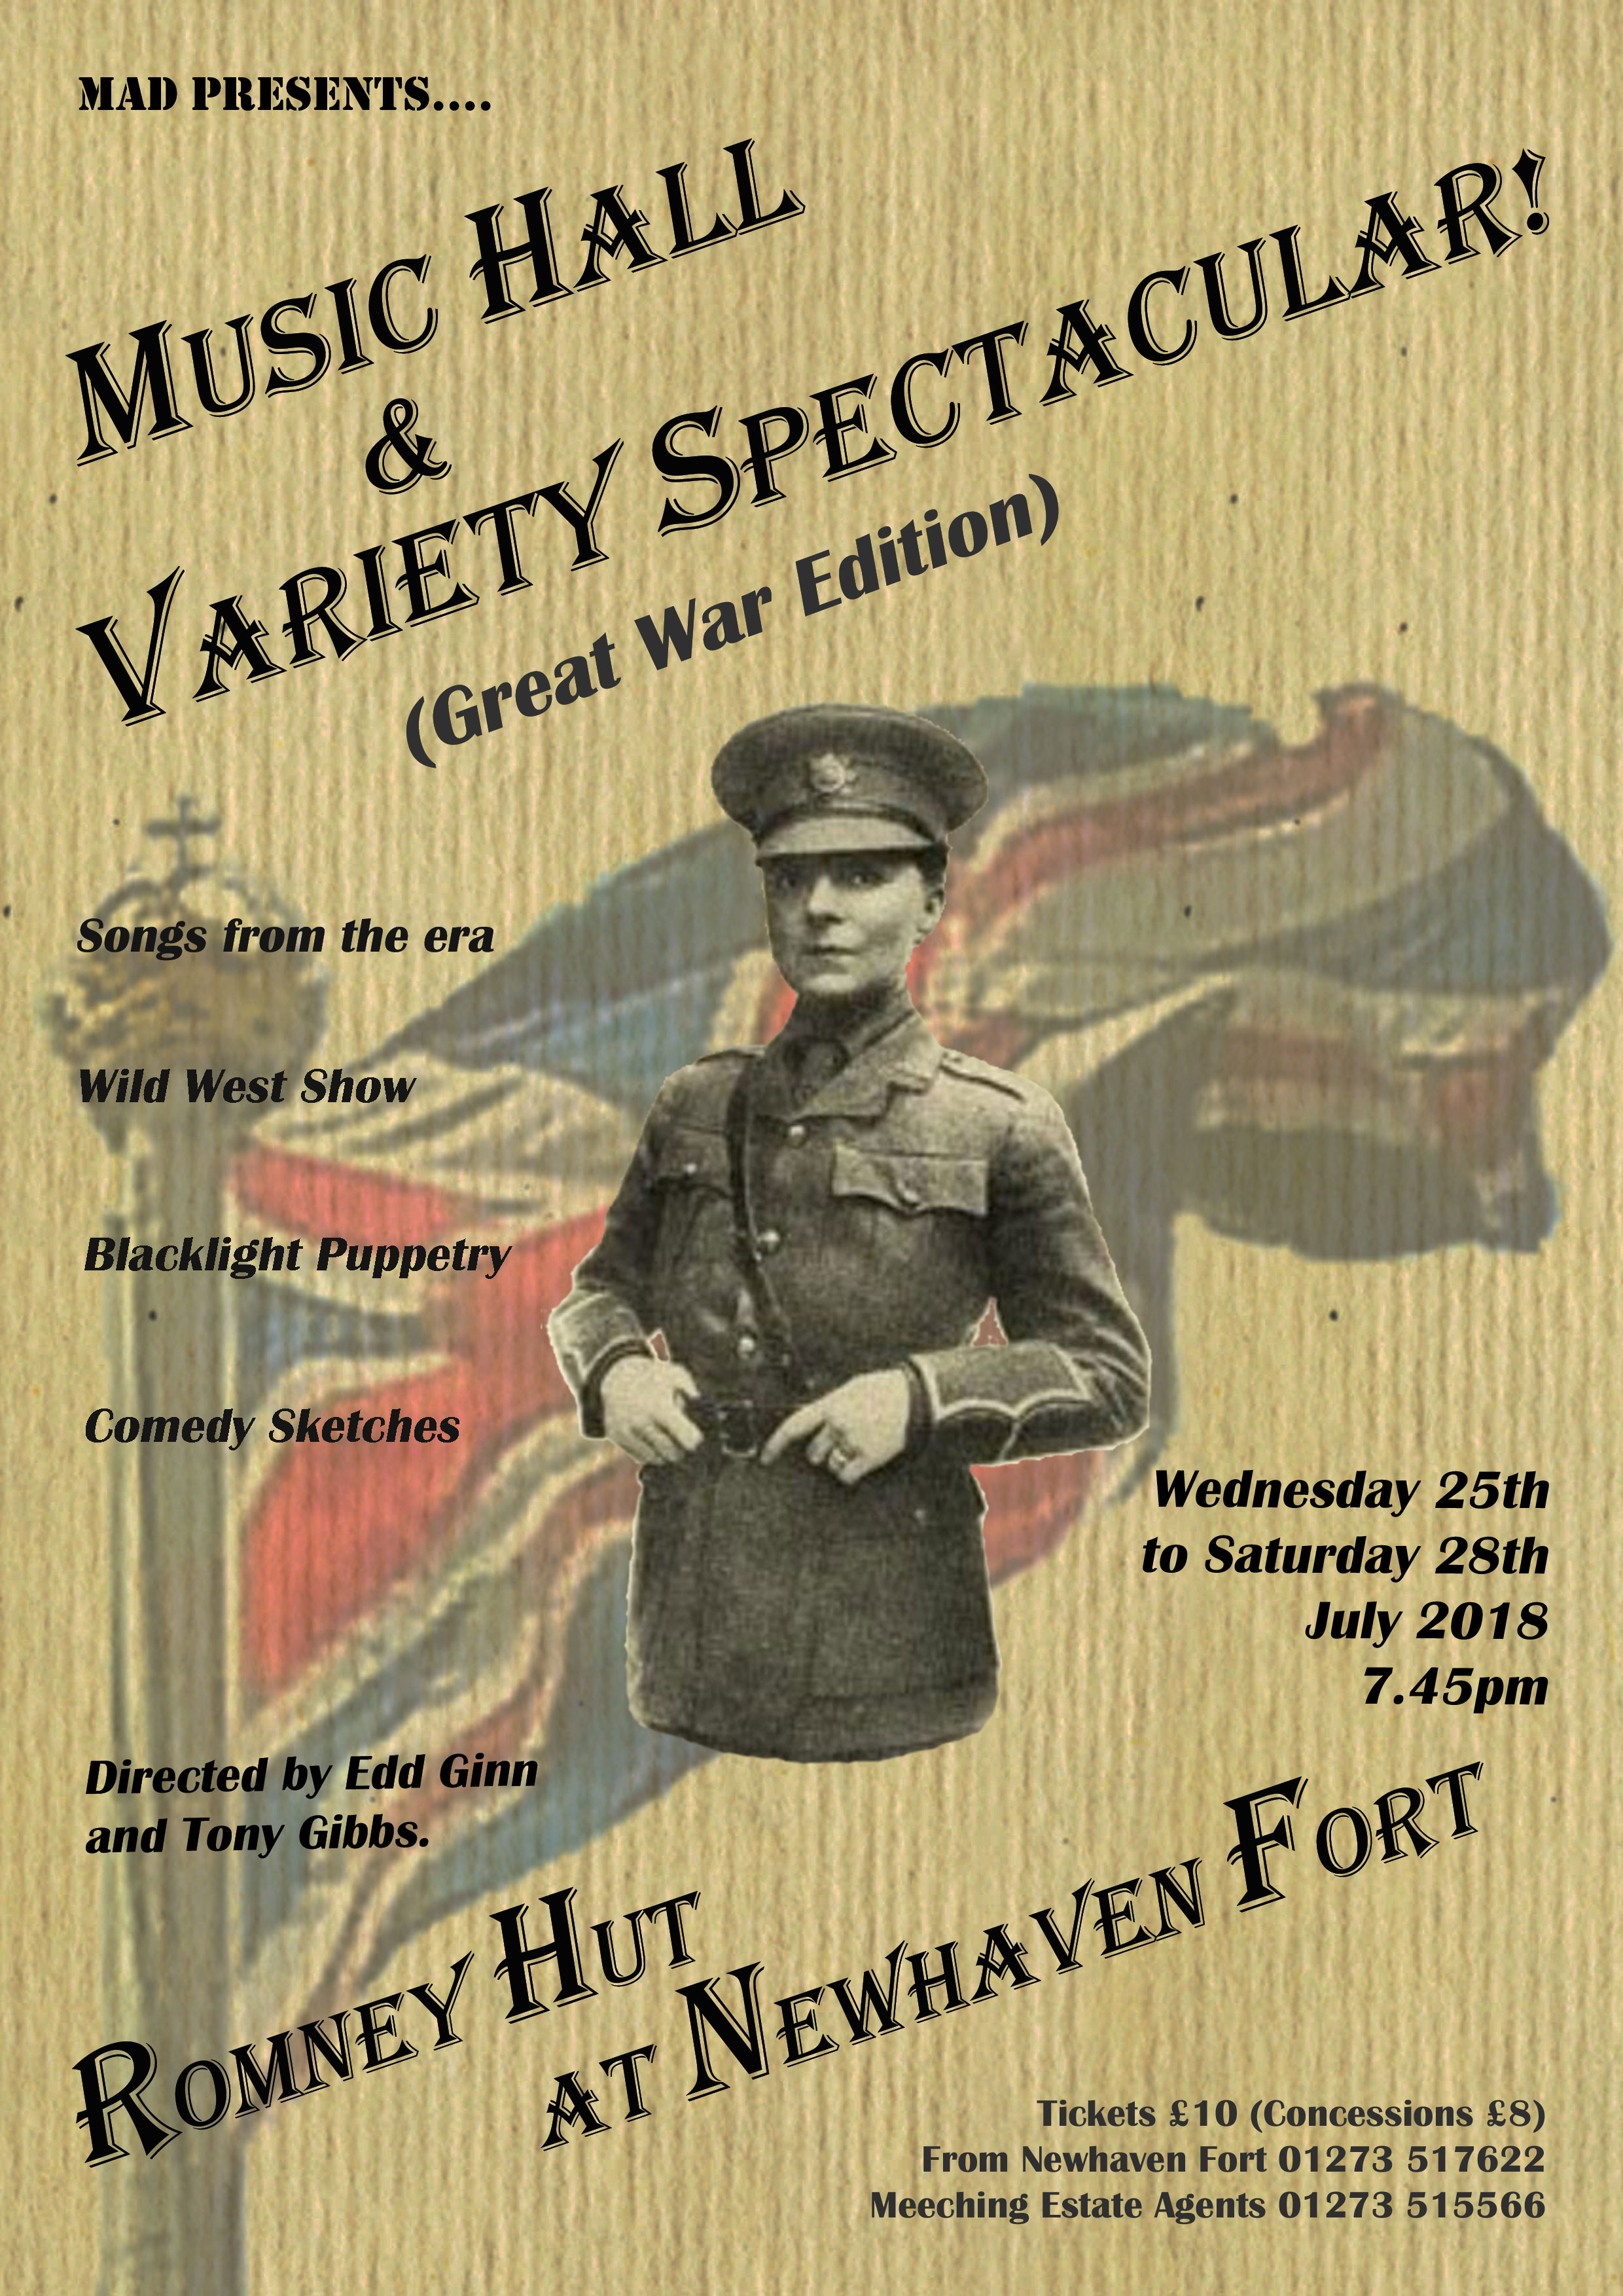 Meeching Amateur Dramatics – Music Hall & Variety Spectacular (Great War Edition) Wednesday 25th – Saturday 28th July